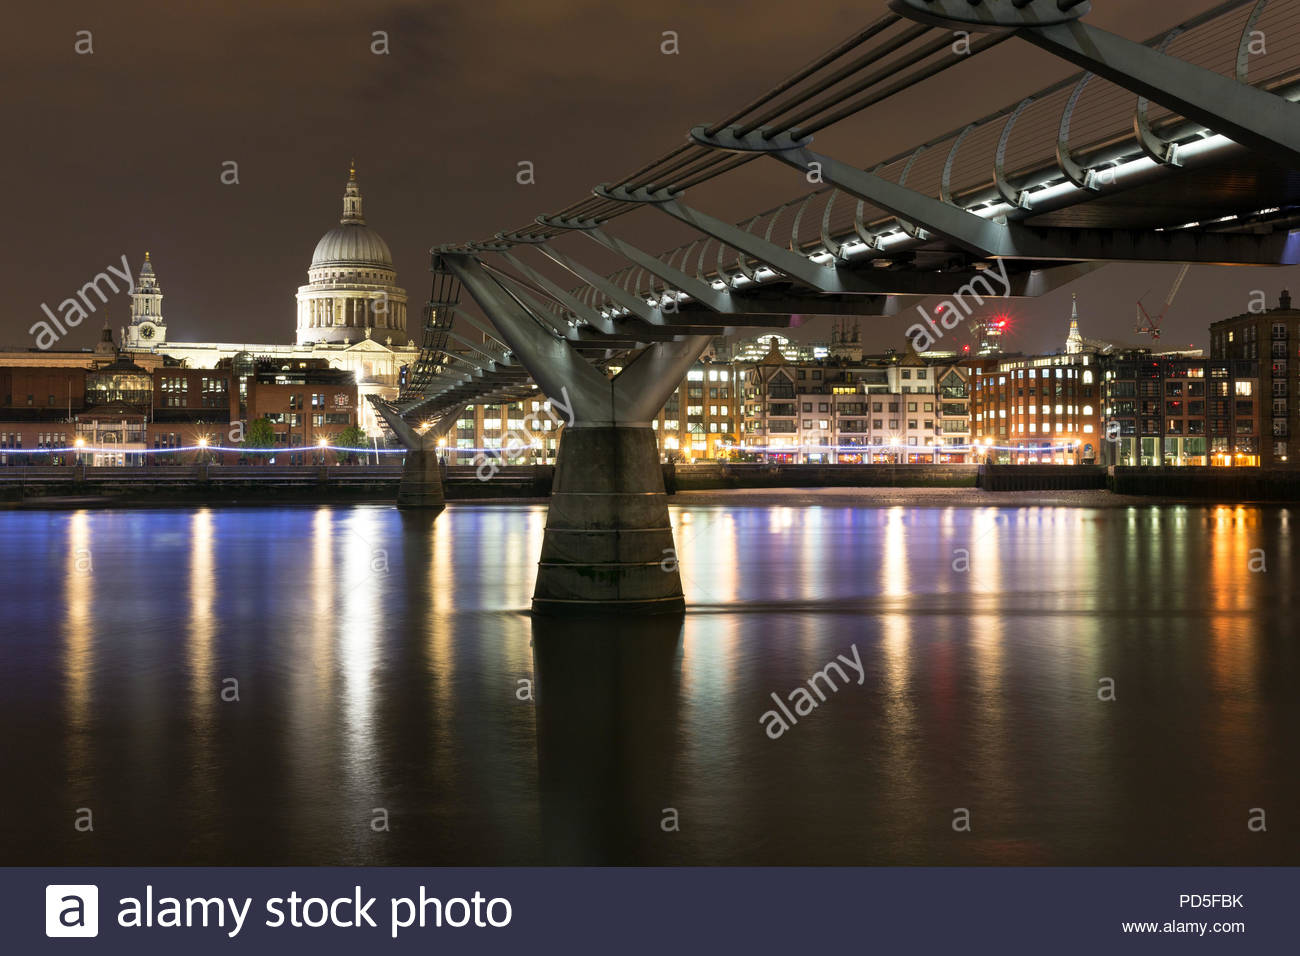 The London Millennium Footbridge over the River Thames at night - Stock Image